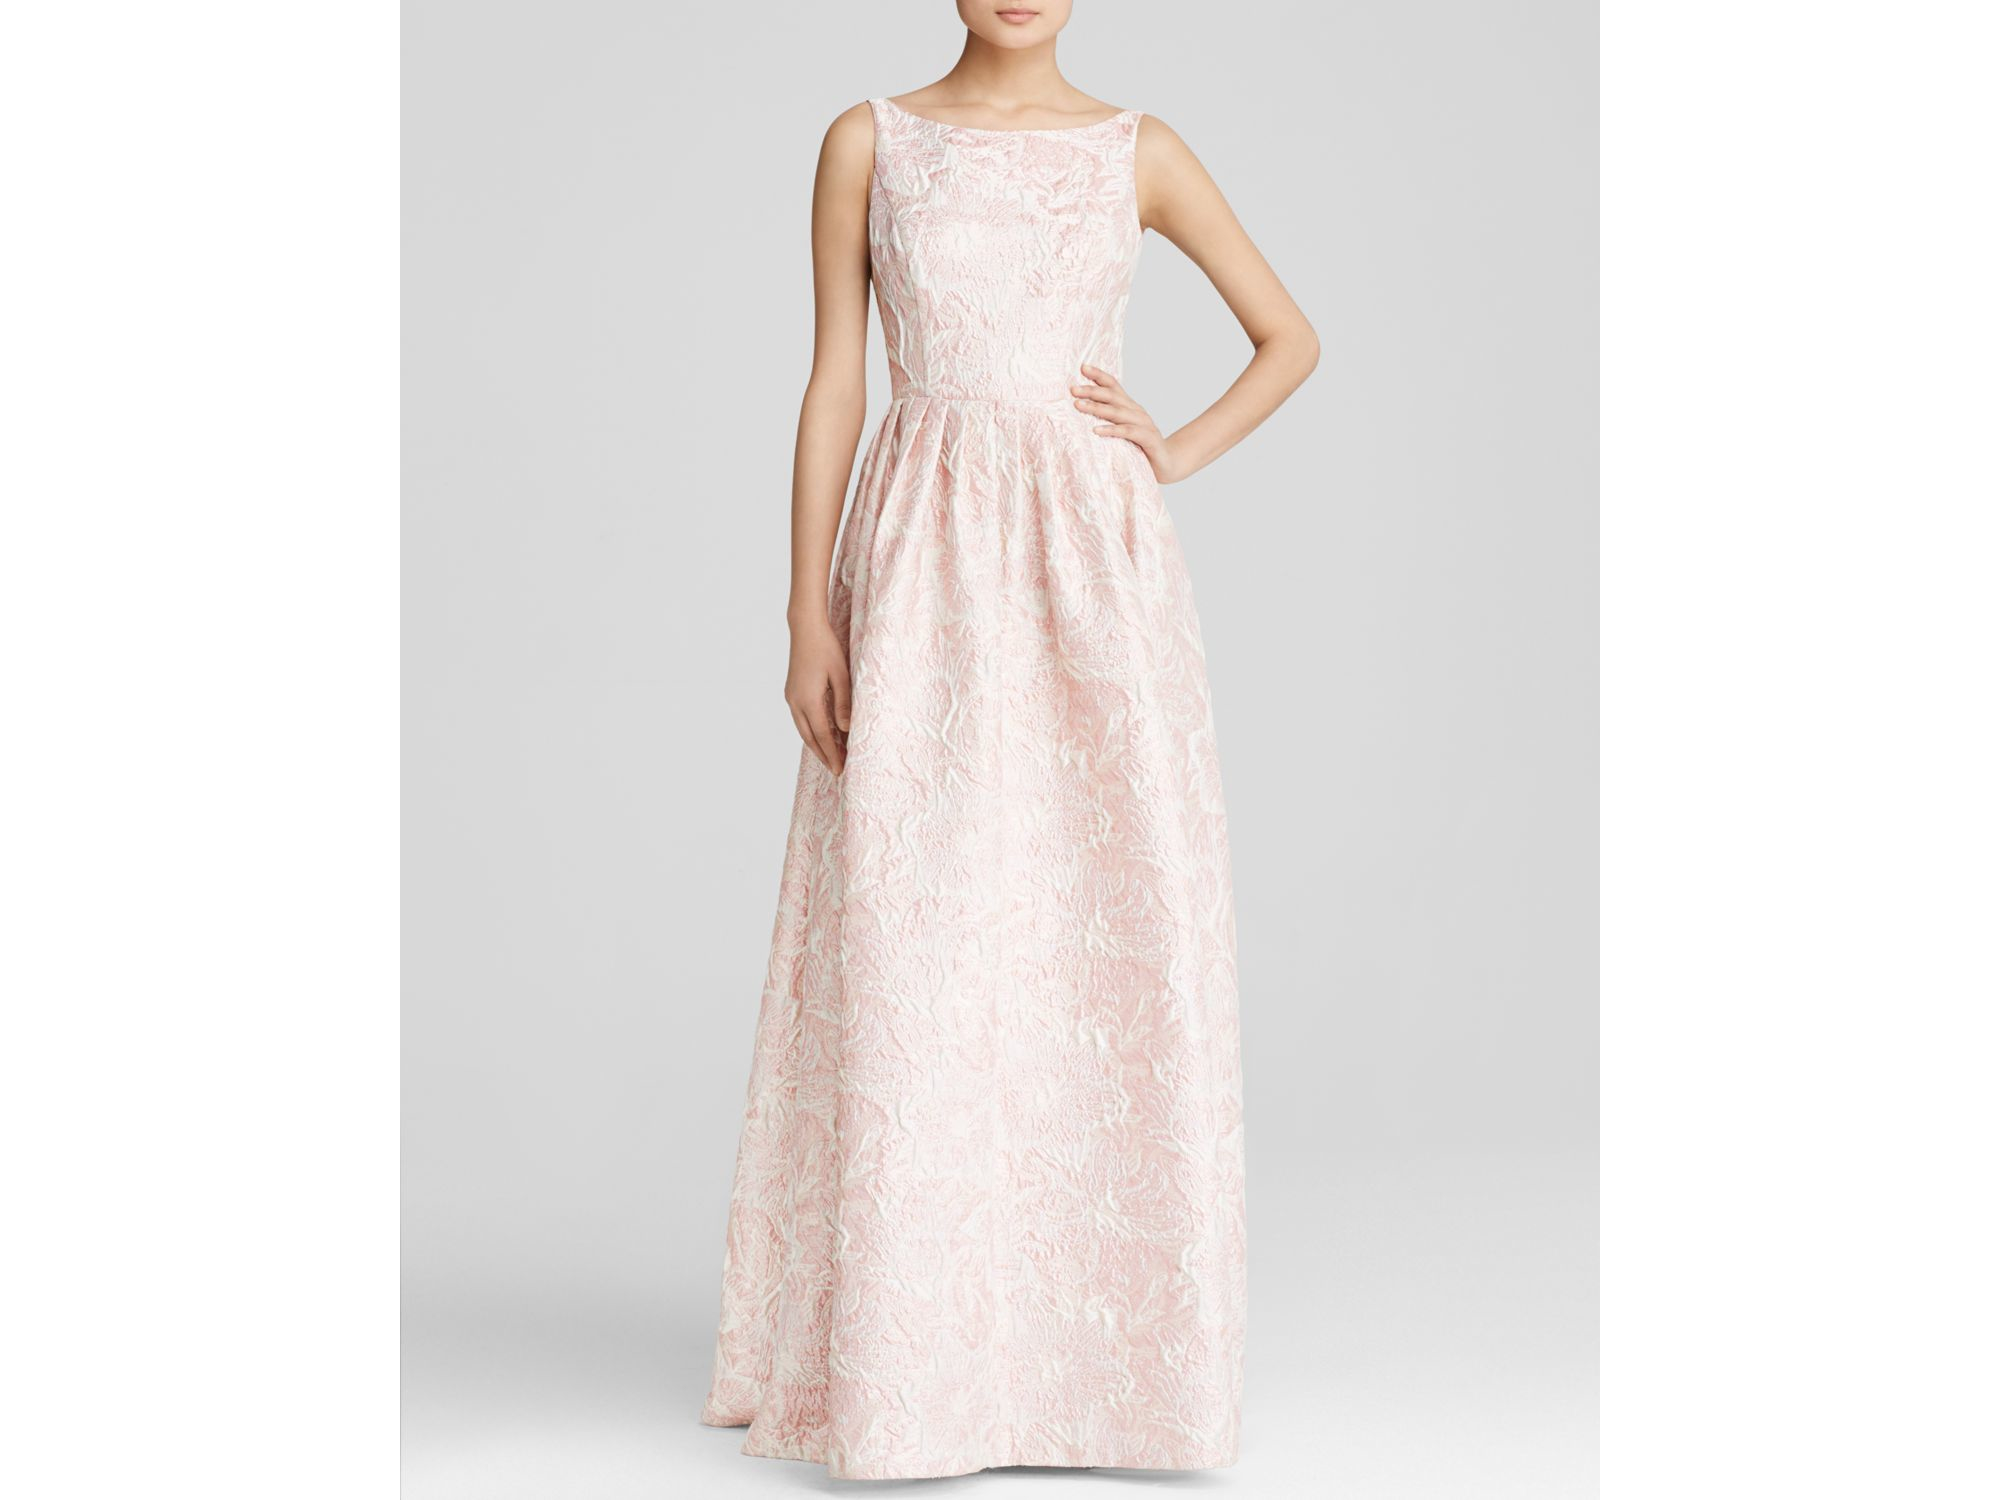 Lyst - Adrianna Papell Gown - Sleeveless High Neck Floral Brocade ...